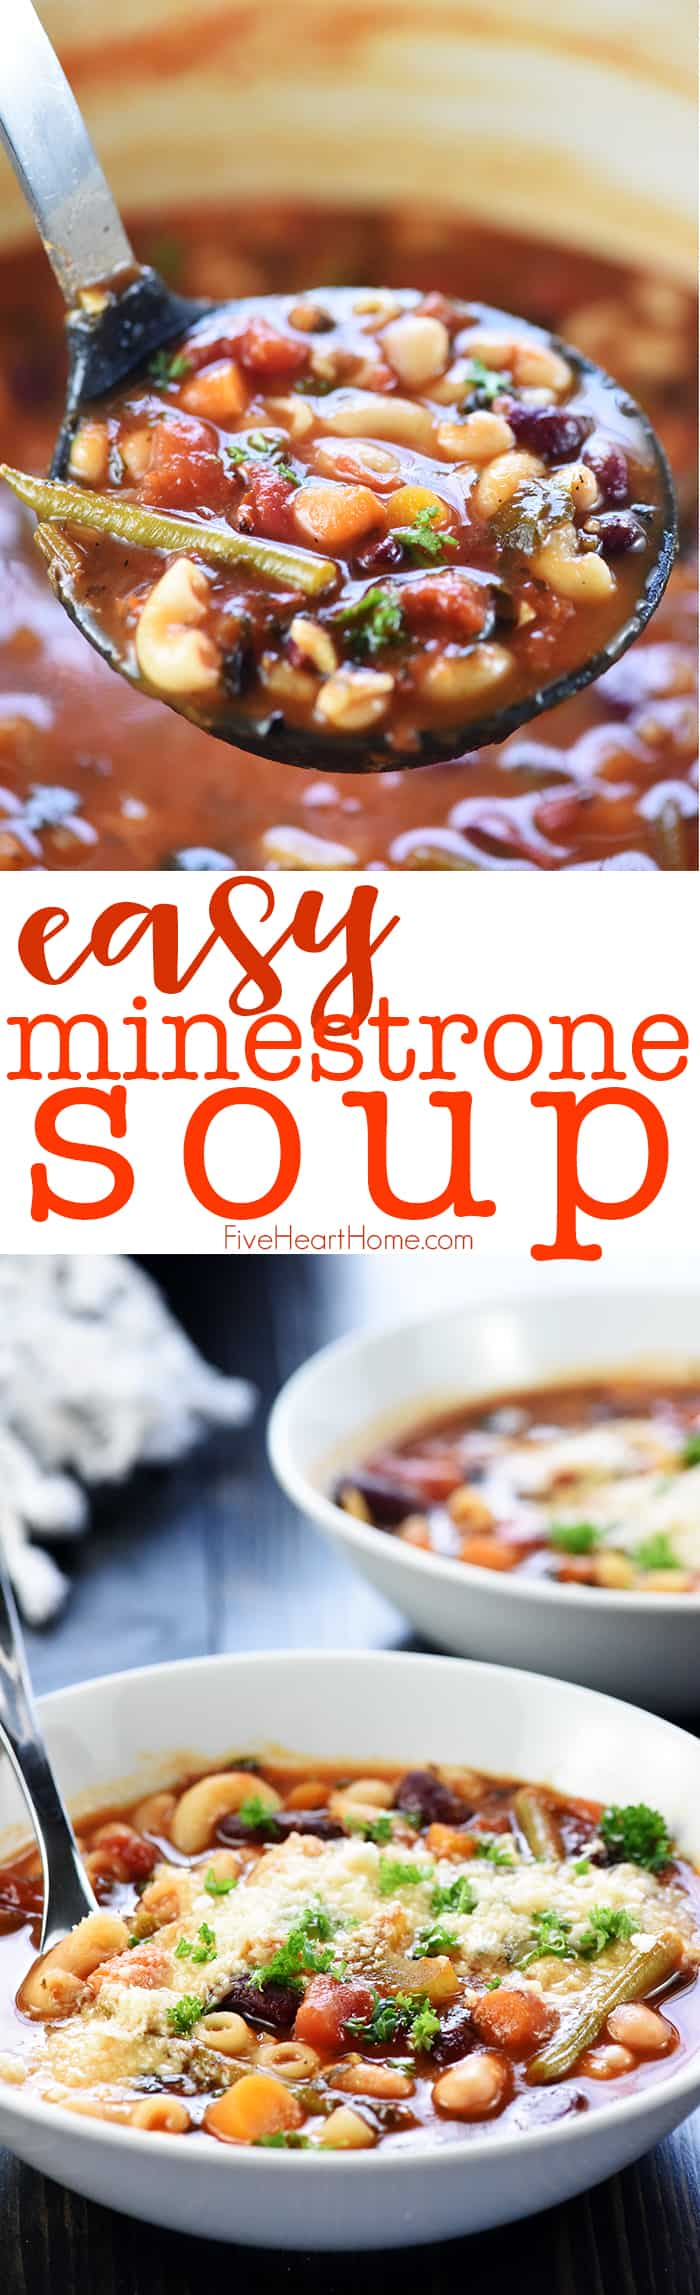 Easy Minestrone Soup ~ this recipe is healthy, flavorful, and simple to customize using your favorite vegetables! | FiveHeartHome.com